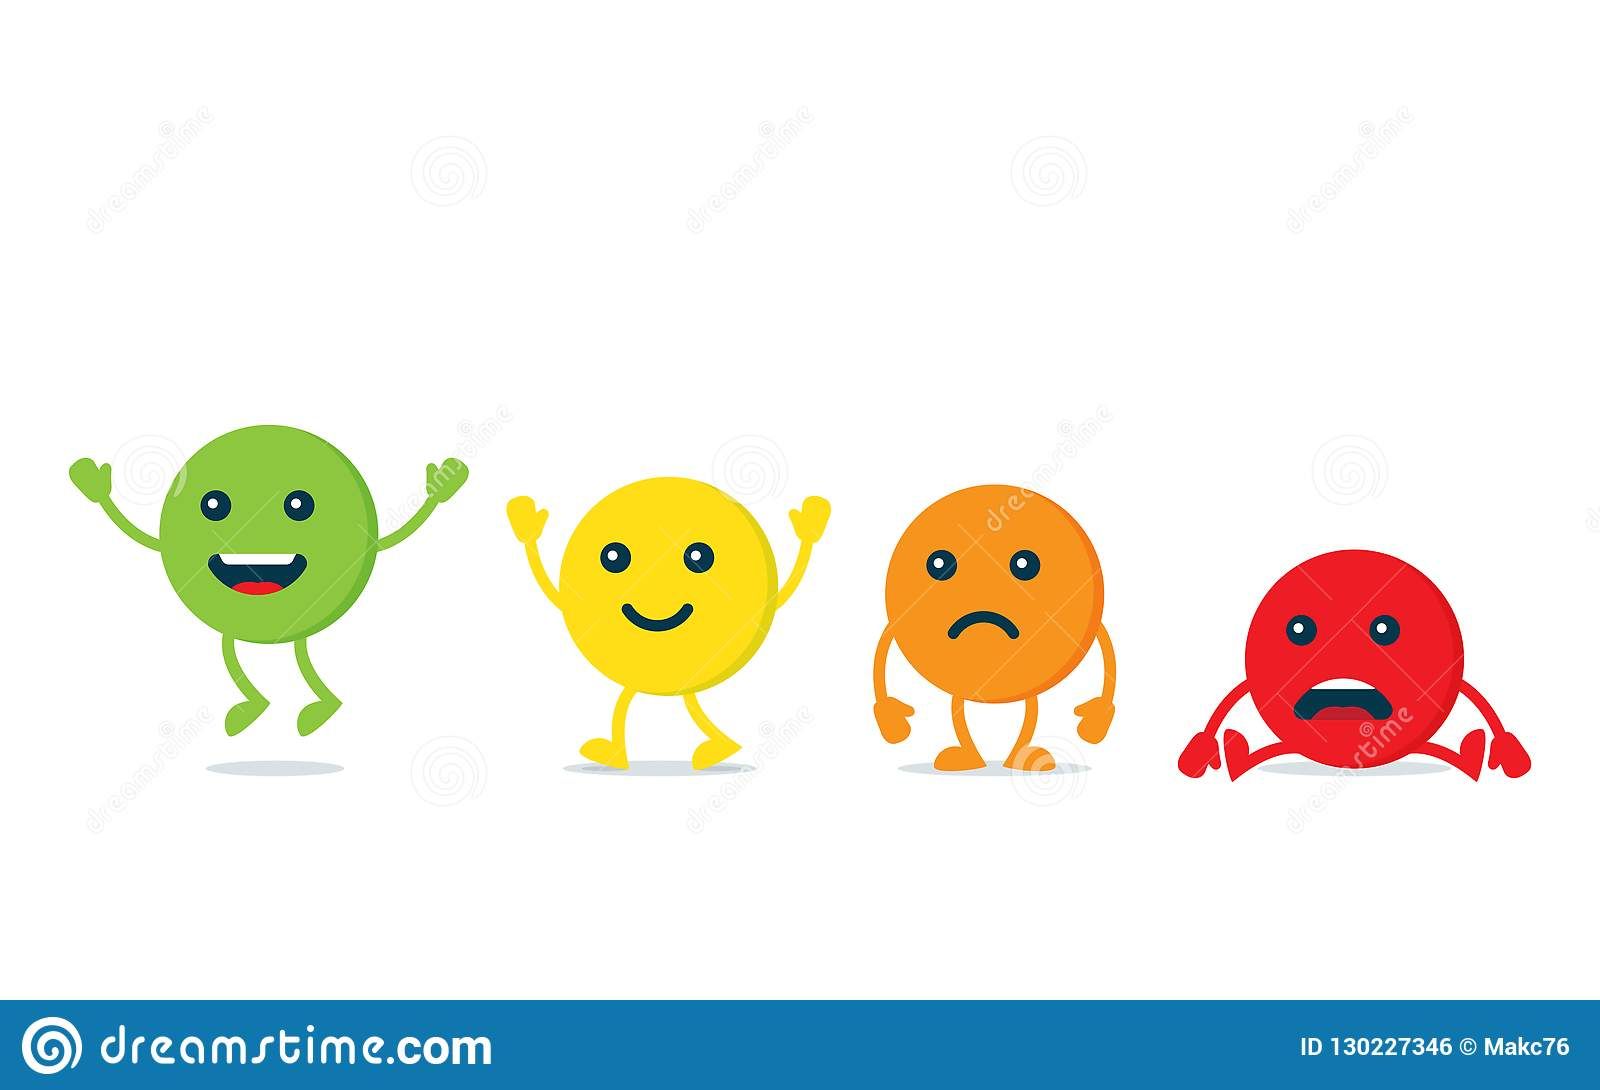 rating satisfaction  feedback in form of emotions  stock vector